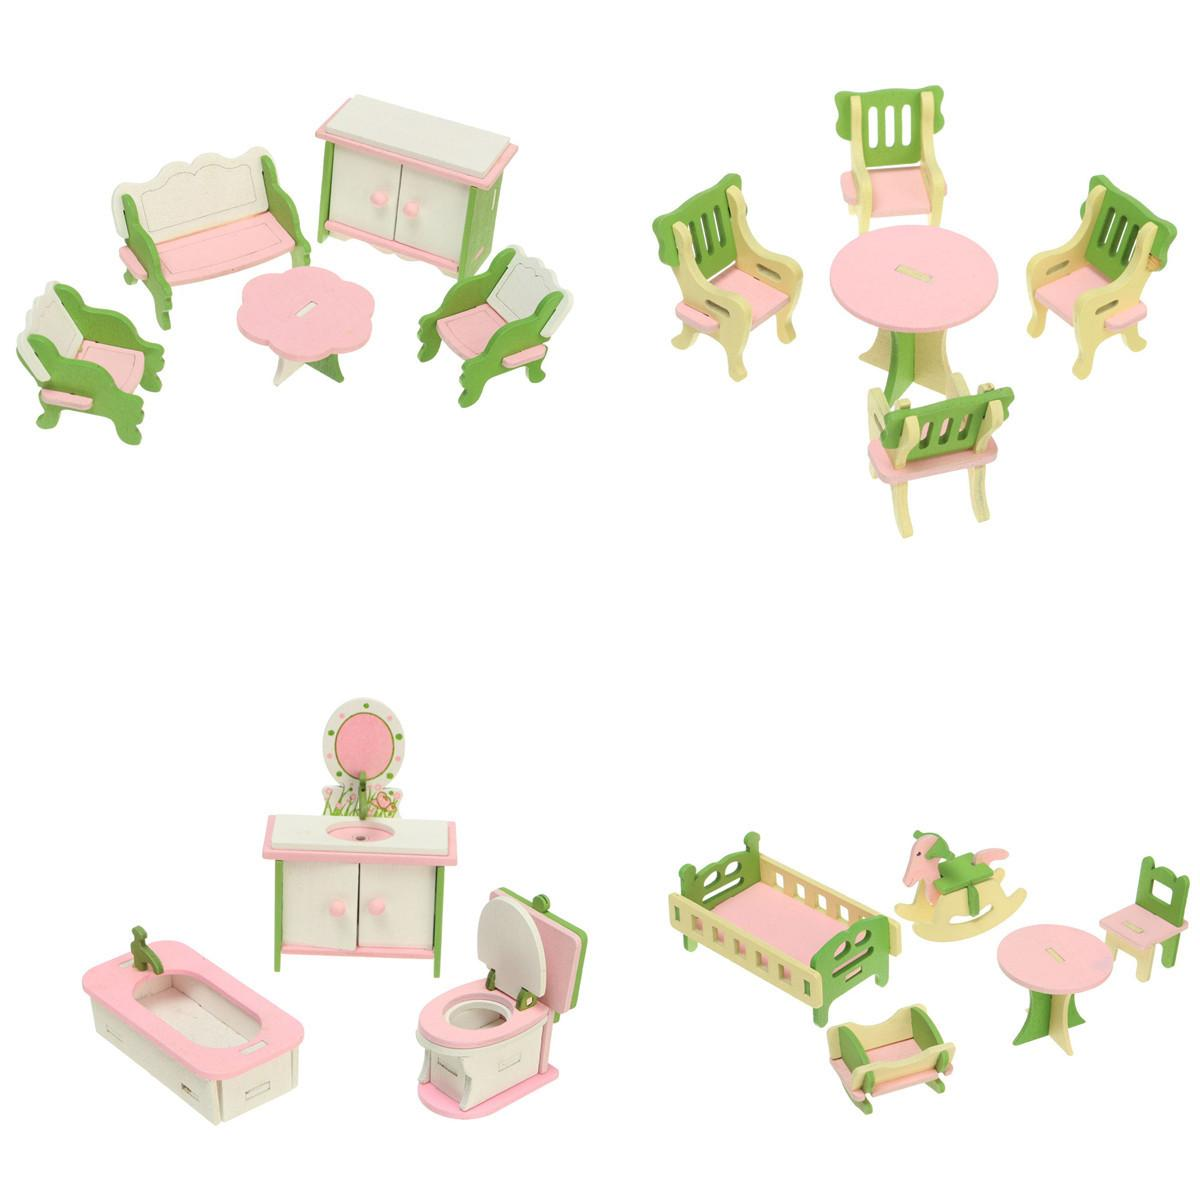 Wooden Delicate Dollhouse Furniture Toys Miniature Three Dimensional